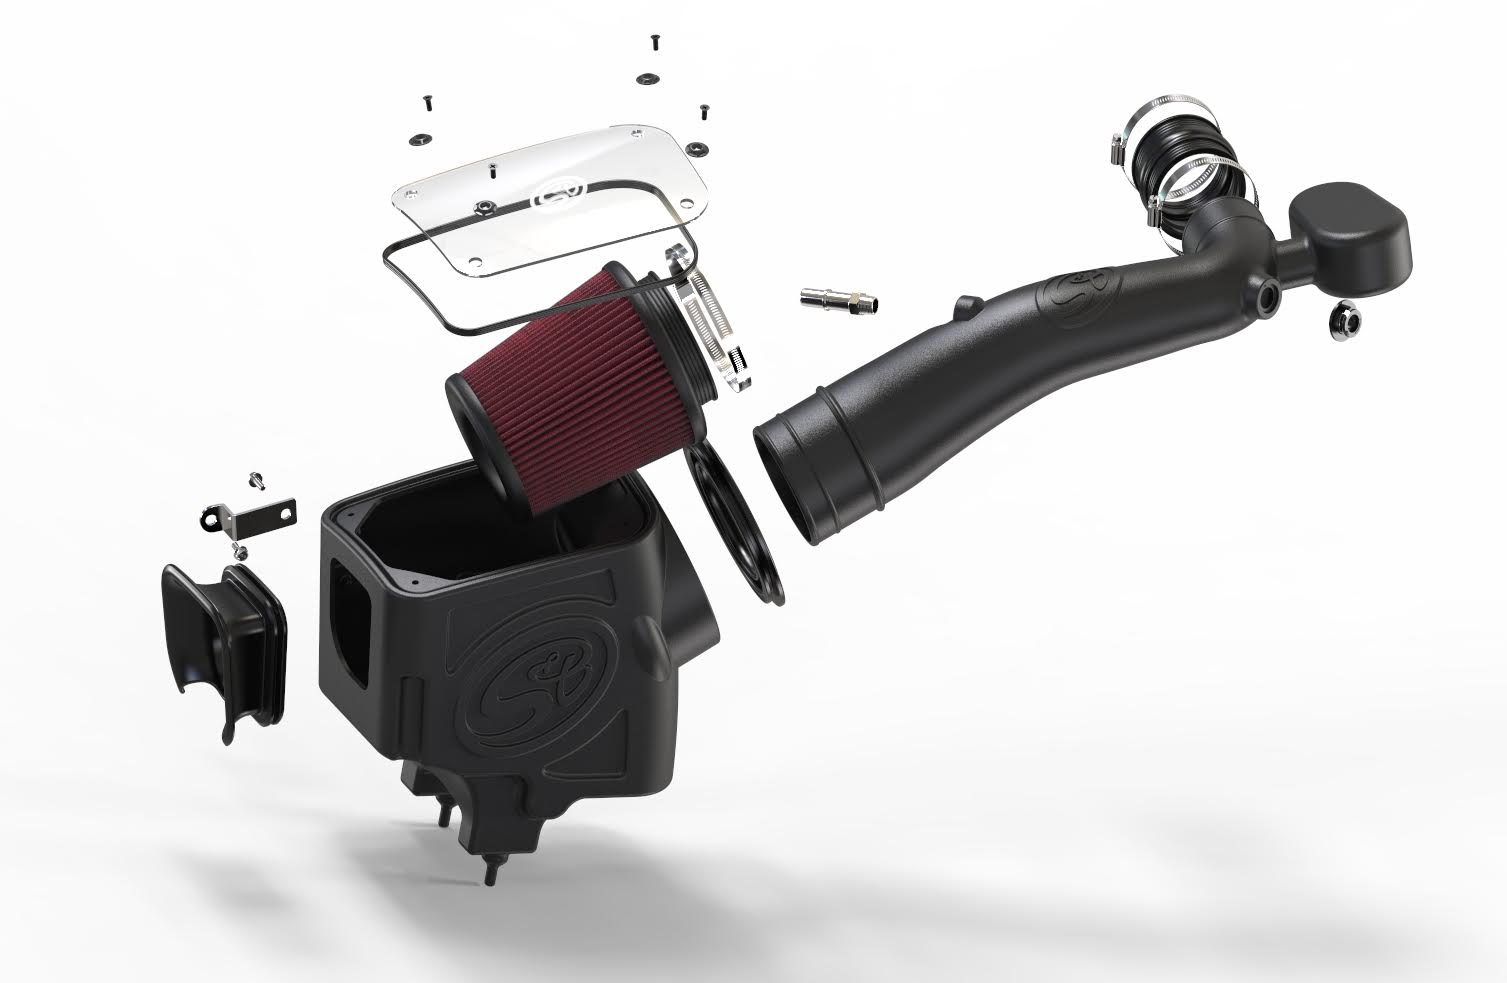 Cold Air Intake Kits Engineered To Outperform The Stock Intake